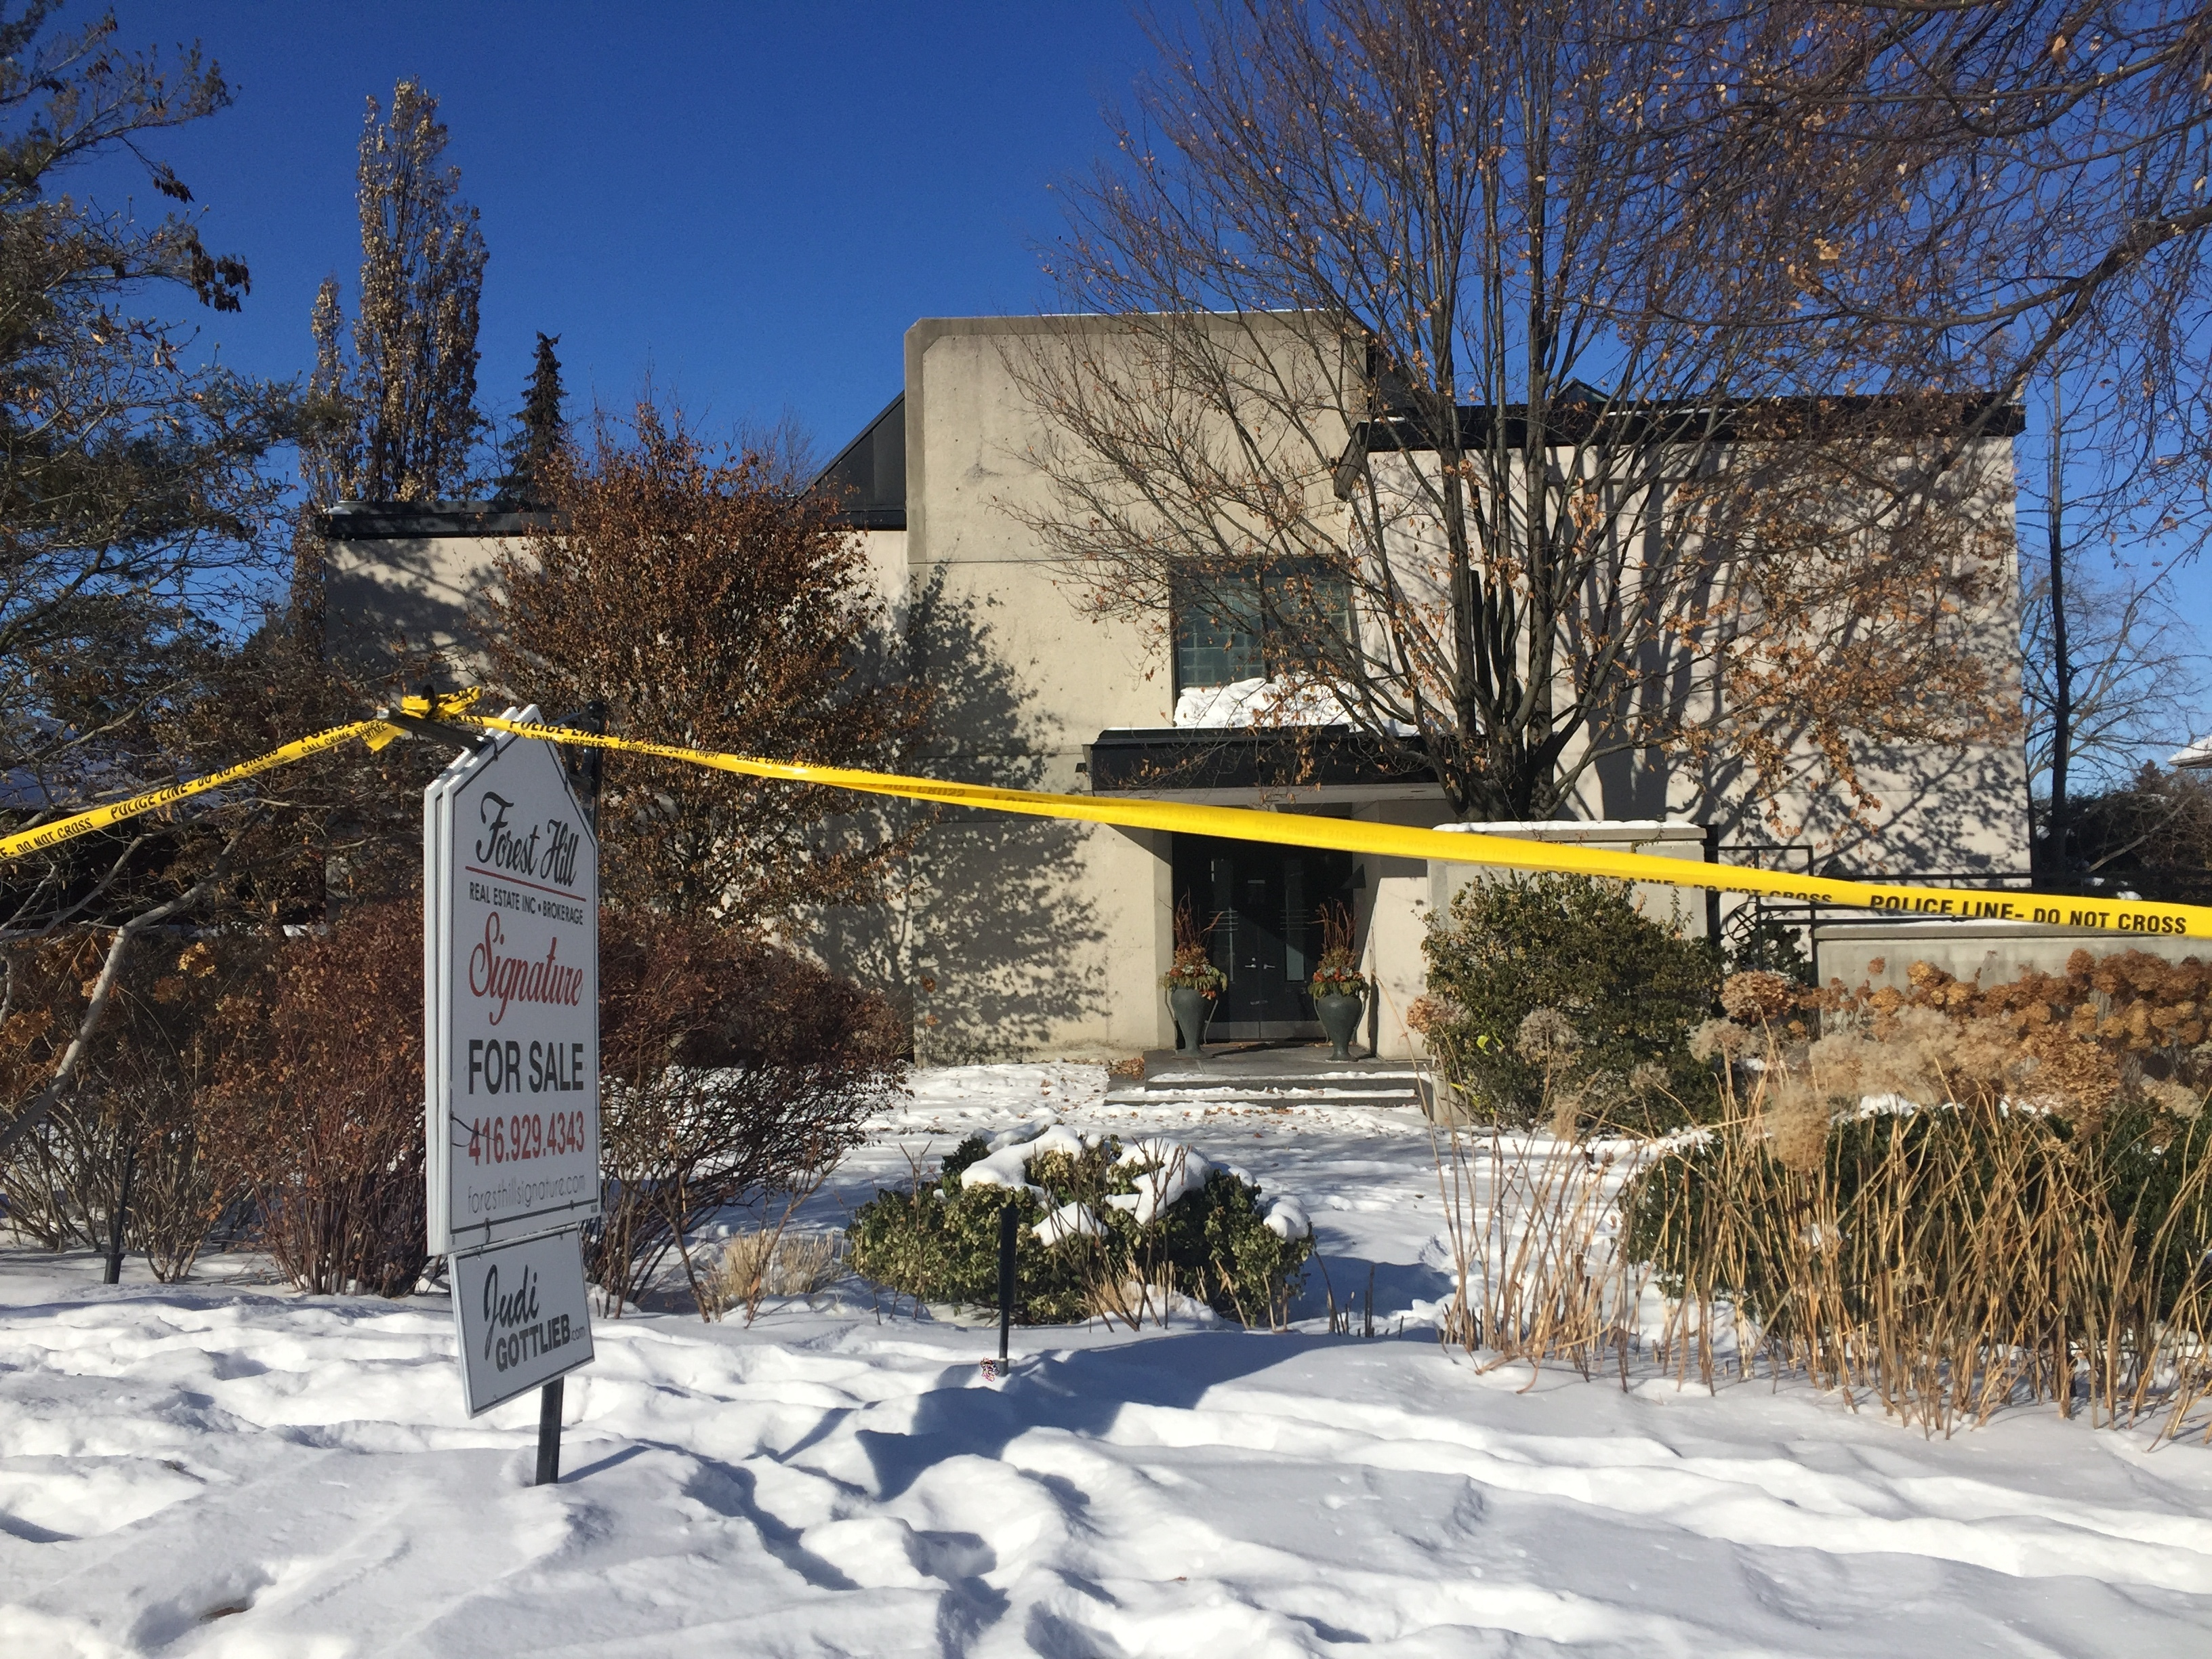 Barry, Honey Sherman were targeted, victims of double homicide